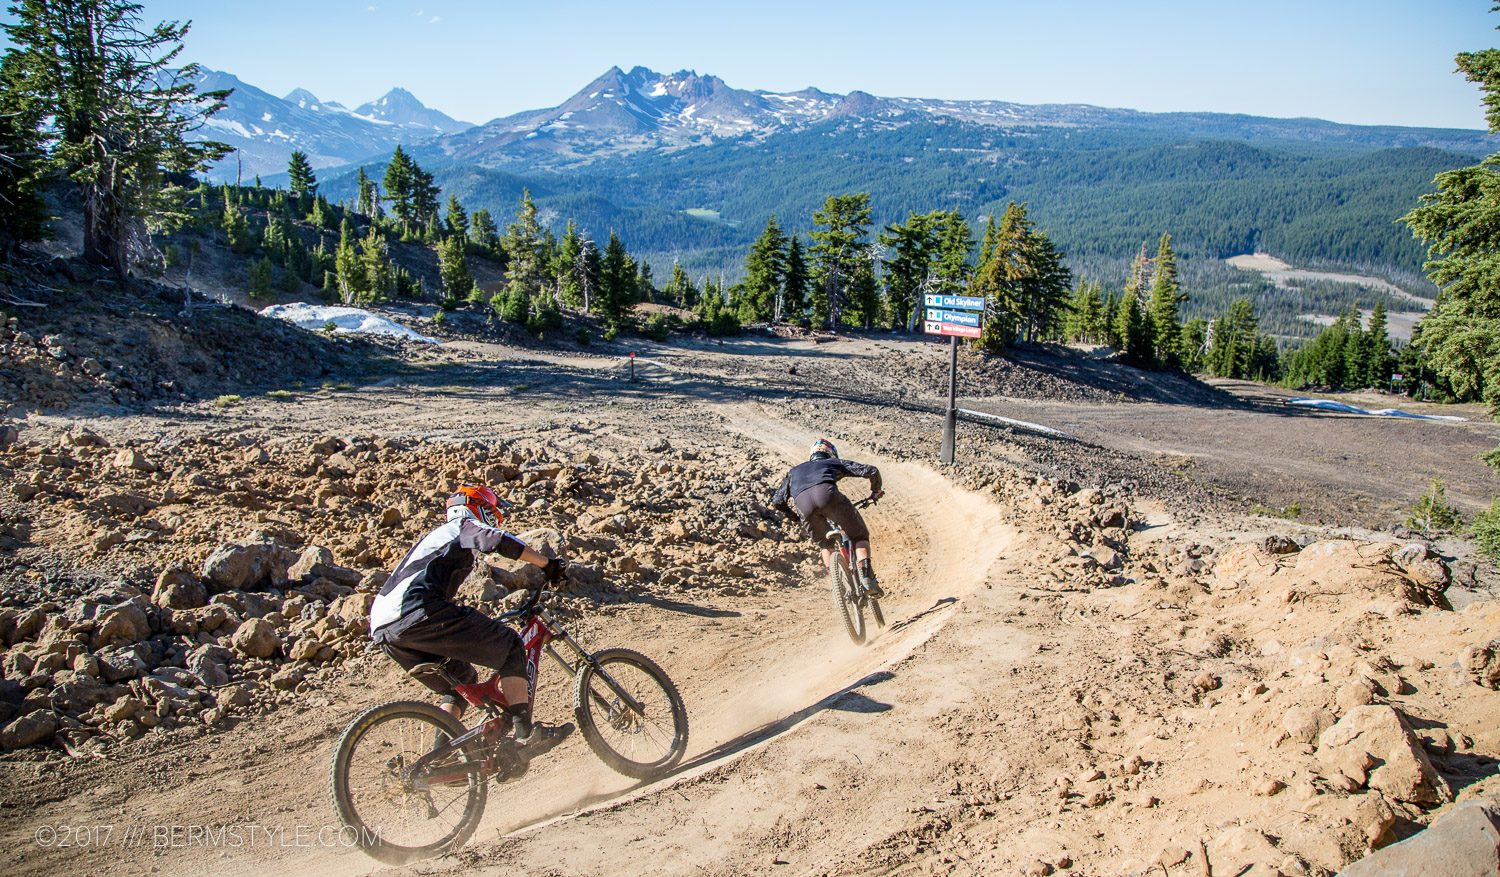 A Weekend Riding the Mt. Bachelor Bike Park